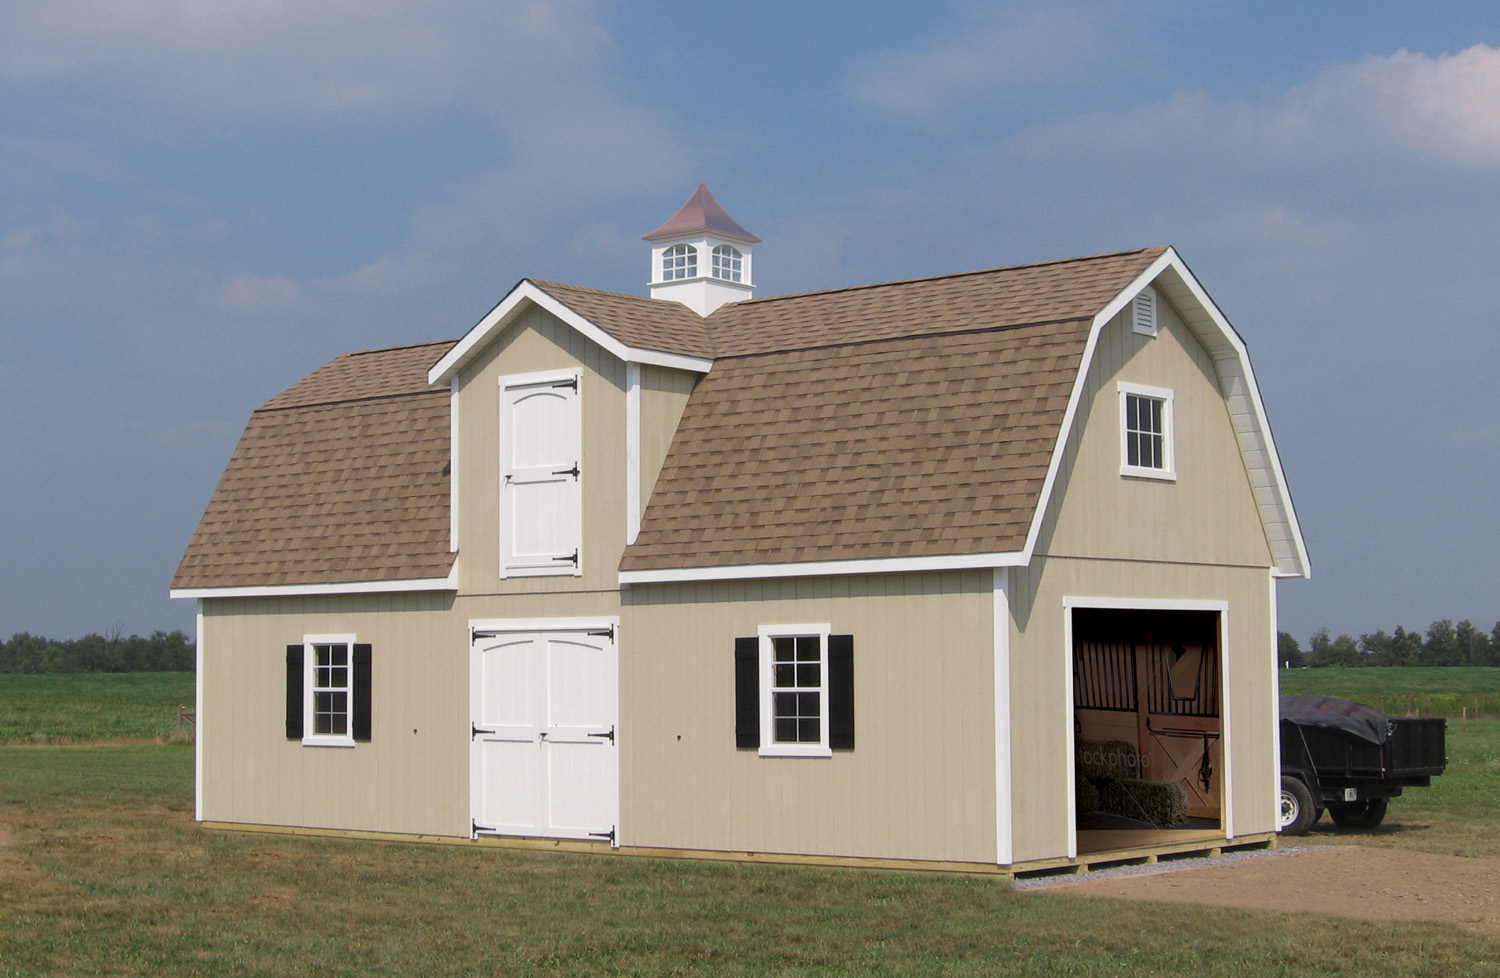 Dream 2 story shed plans 16 photo building plans online for 2 story barn plans